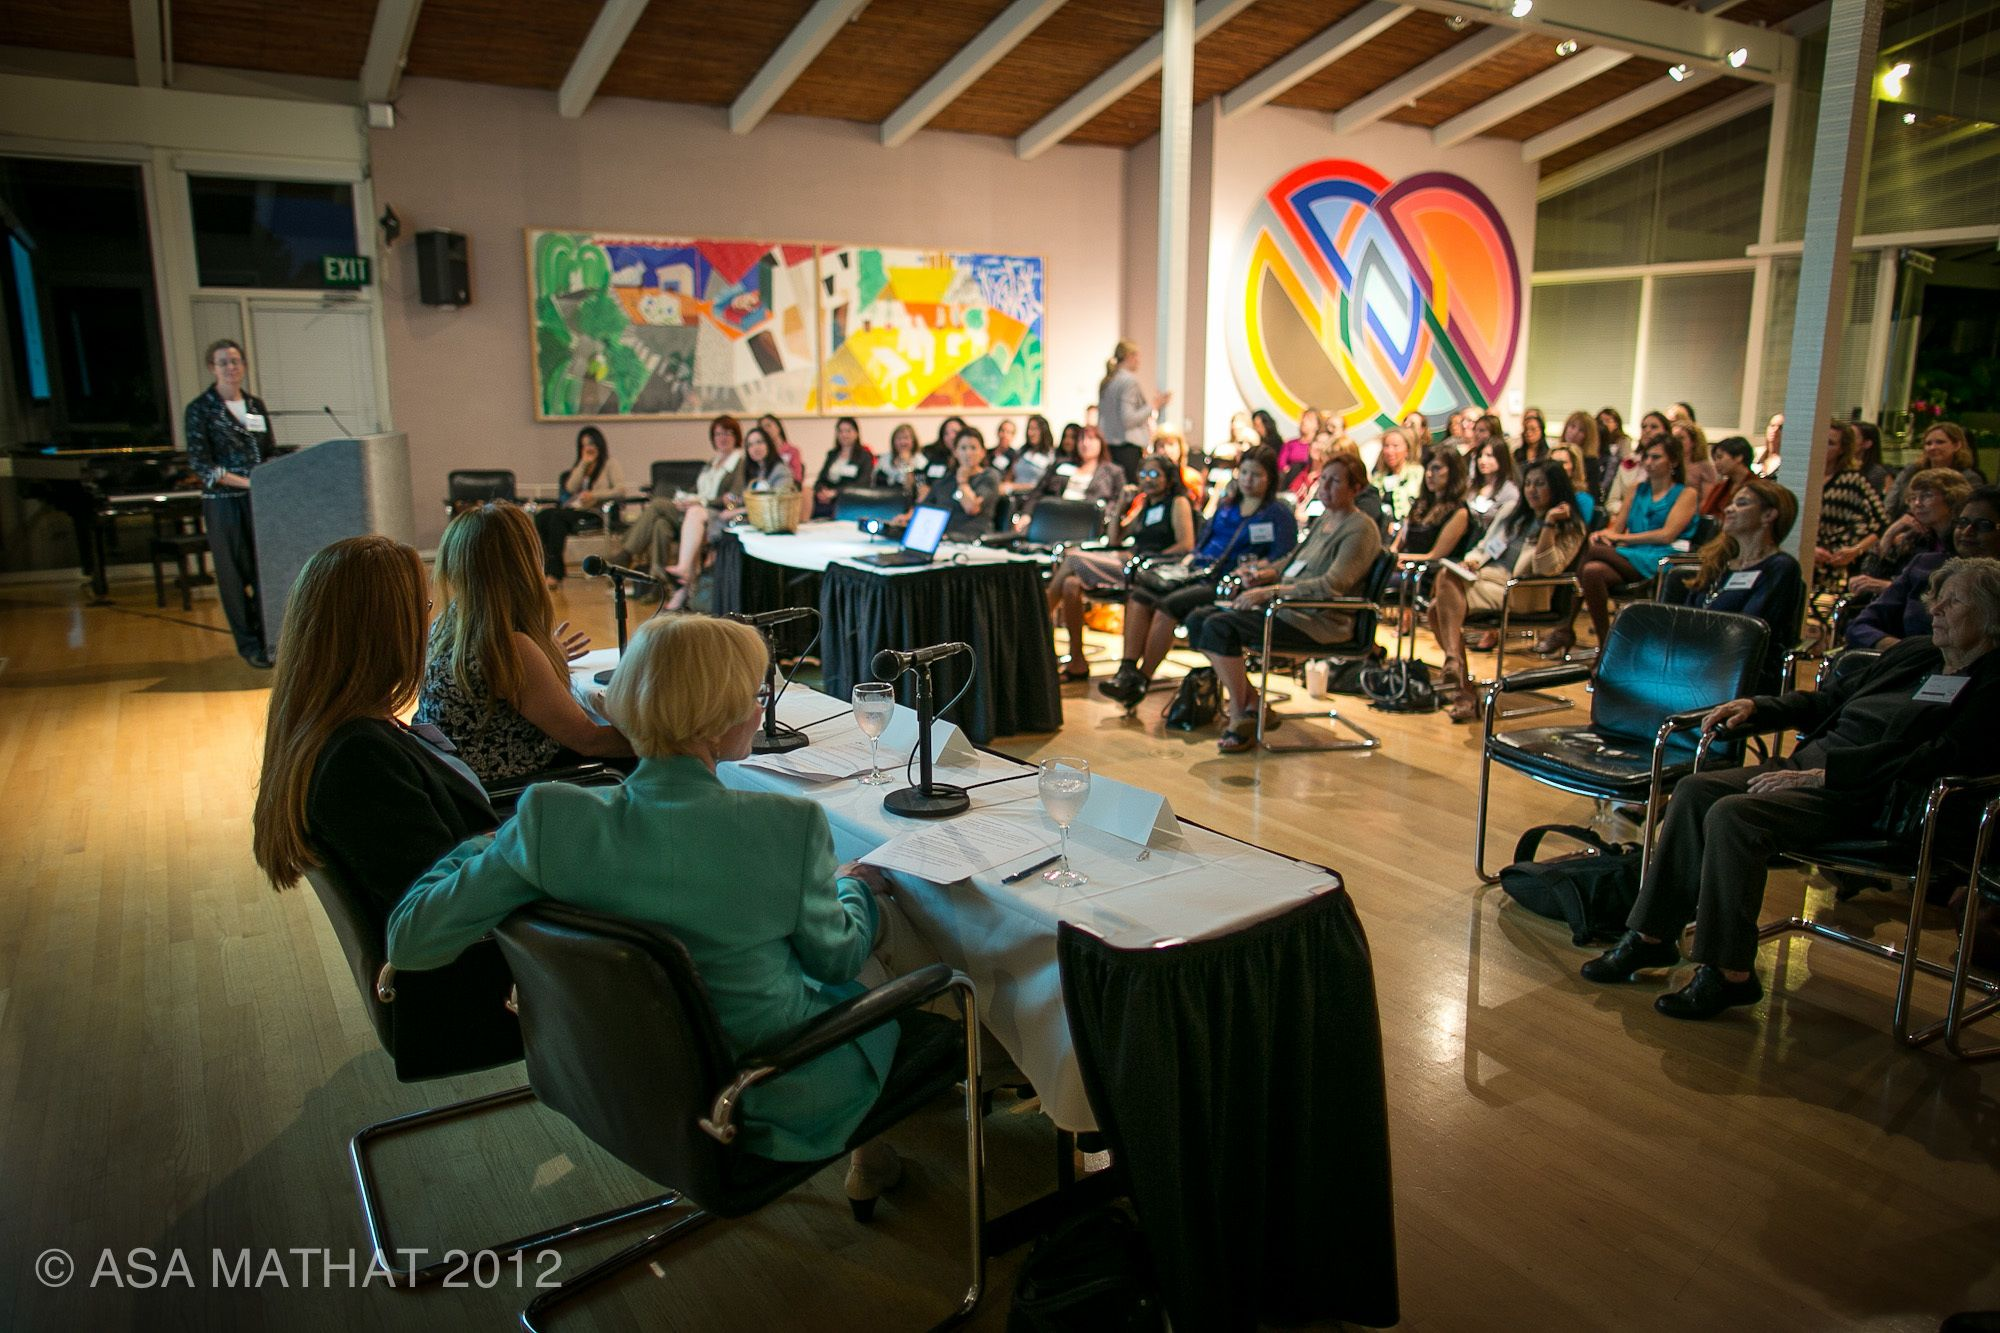 The Women's CLUB of Silicon Valley